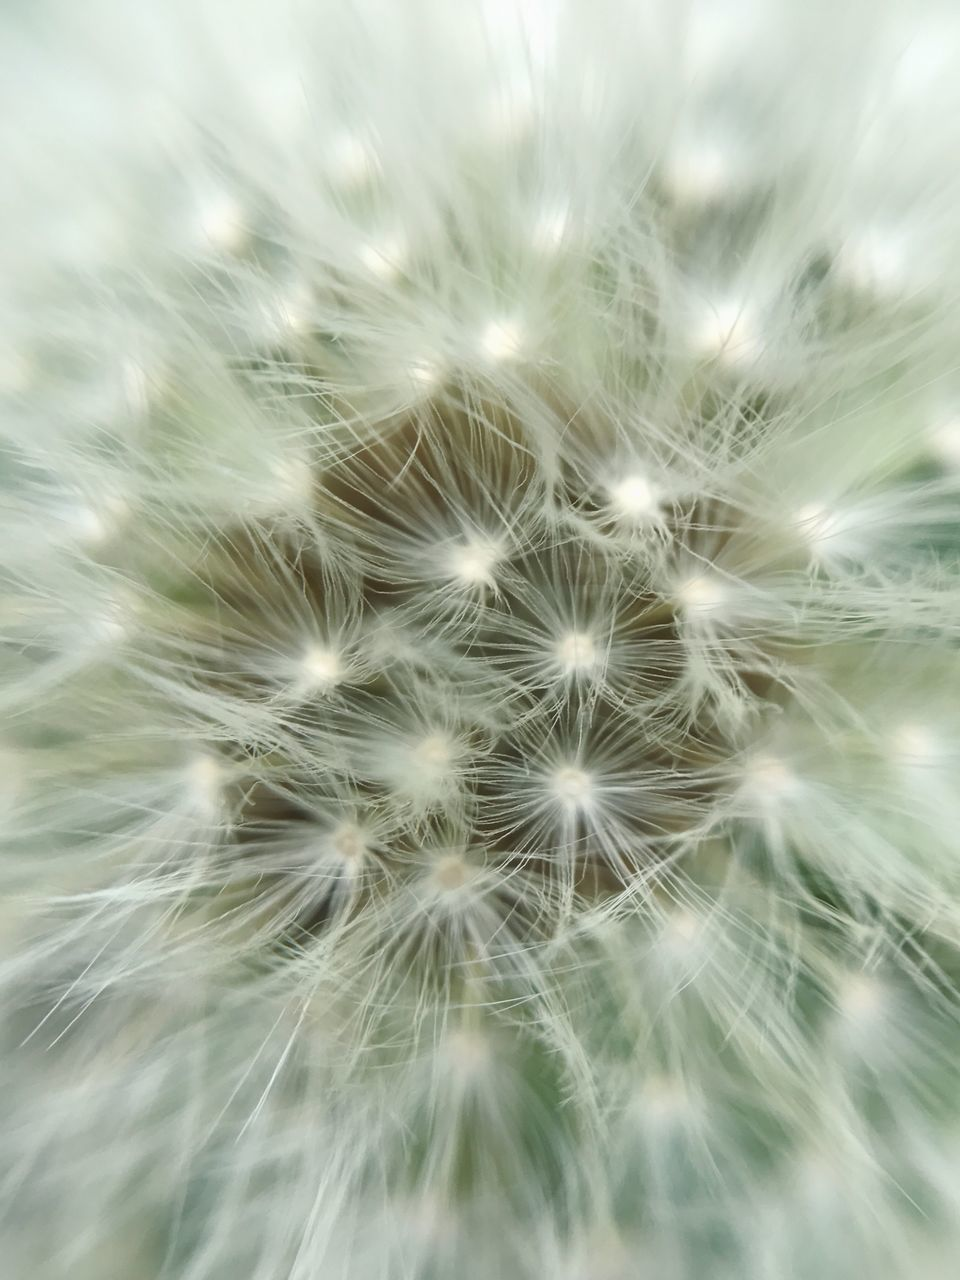 dandelion, dandelion seed, flower, nature, fragility, softness, growth, close-up, freshness, plant, beauty in nature, uncultivated, delicate, selective focus, no people, full frame, outdoors, flower head, hope, day